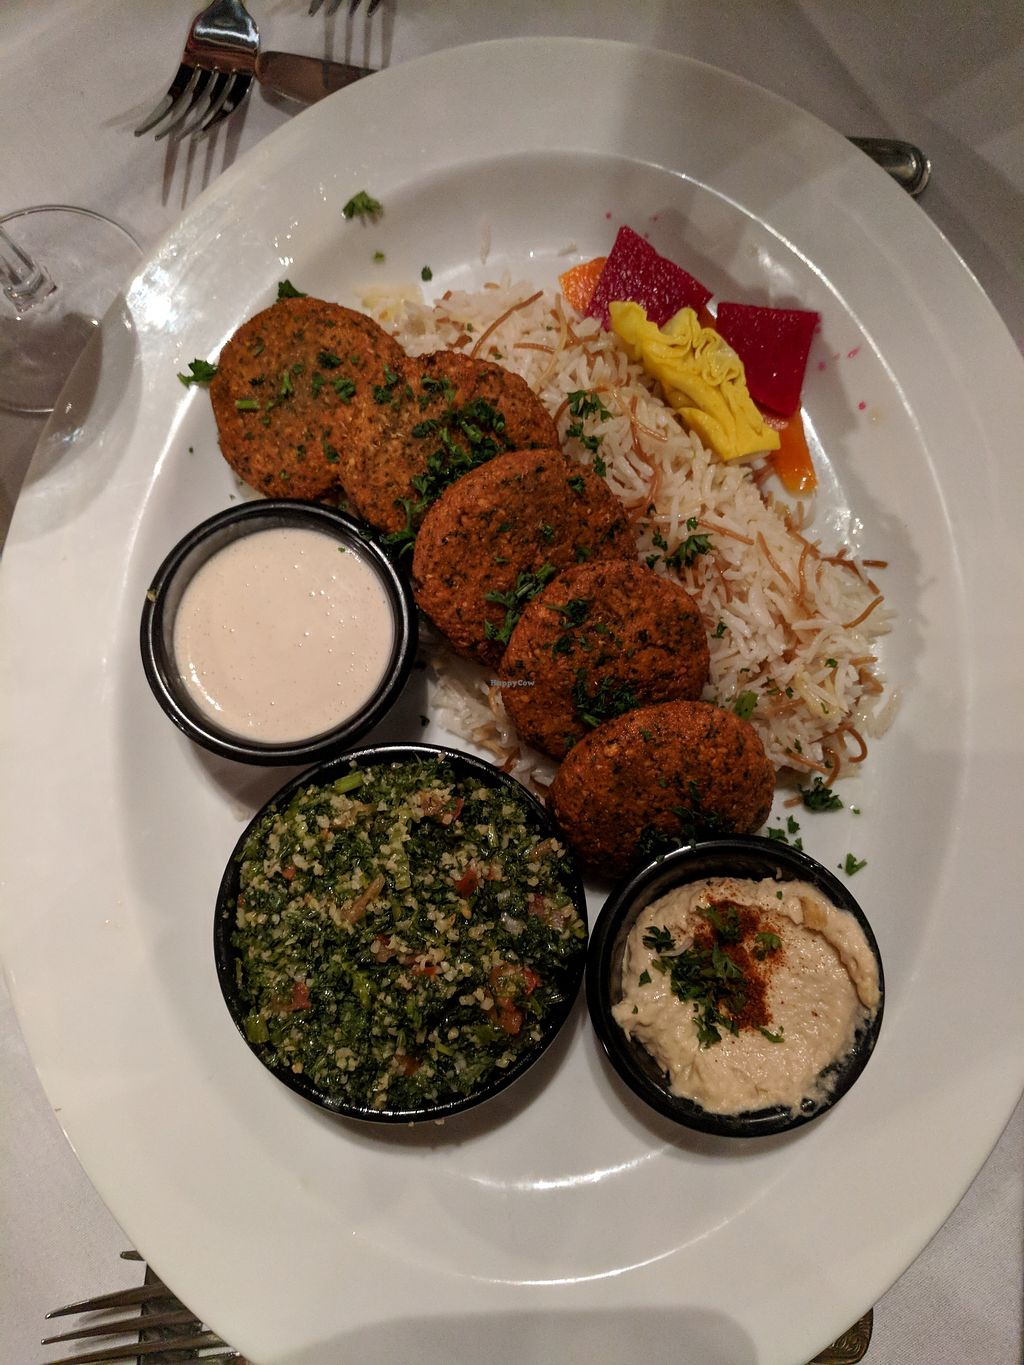 """Photo of Soro's Mediterranean Grill  by <a href=""""/members/profile/greenapplelover7"""">greenapplelover7</a> <br/>falafel plate <br/> March 2, 2018  - <a href='/contact/abuse/image/113456/365647'>Report</a>"""